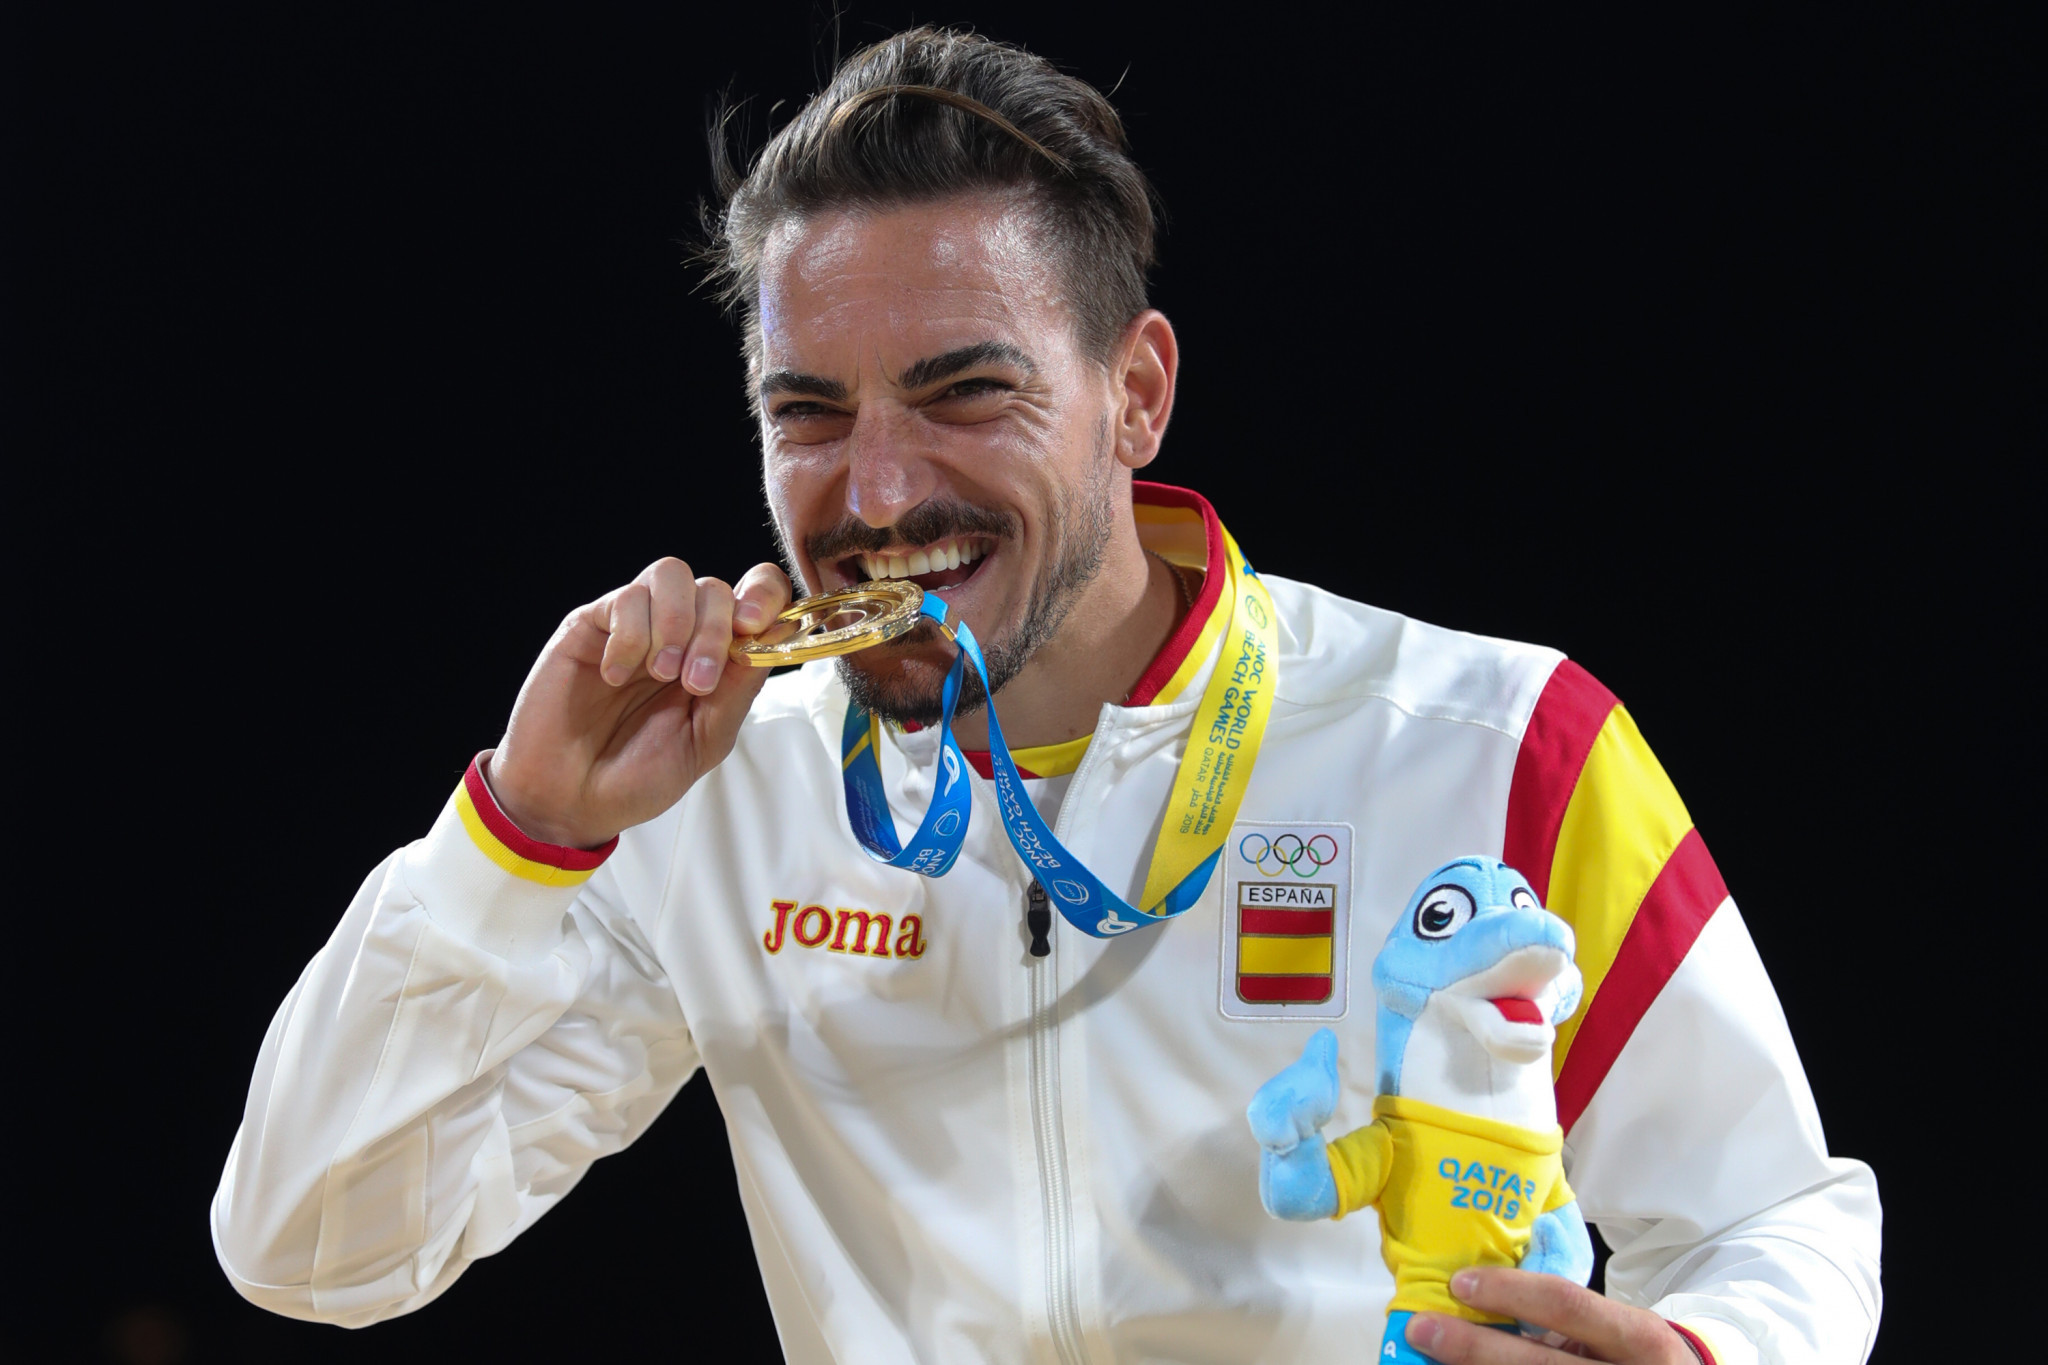 Damien Quintero celebrates with his ANOC World Beach Games gold medal after making it an historic Spanish double in karate kata ©ANOC World Beach Games